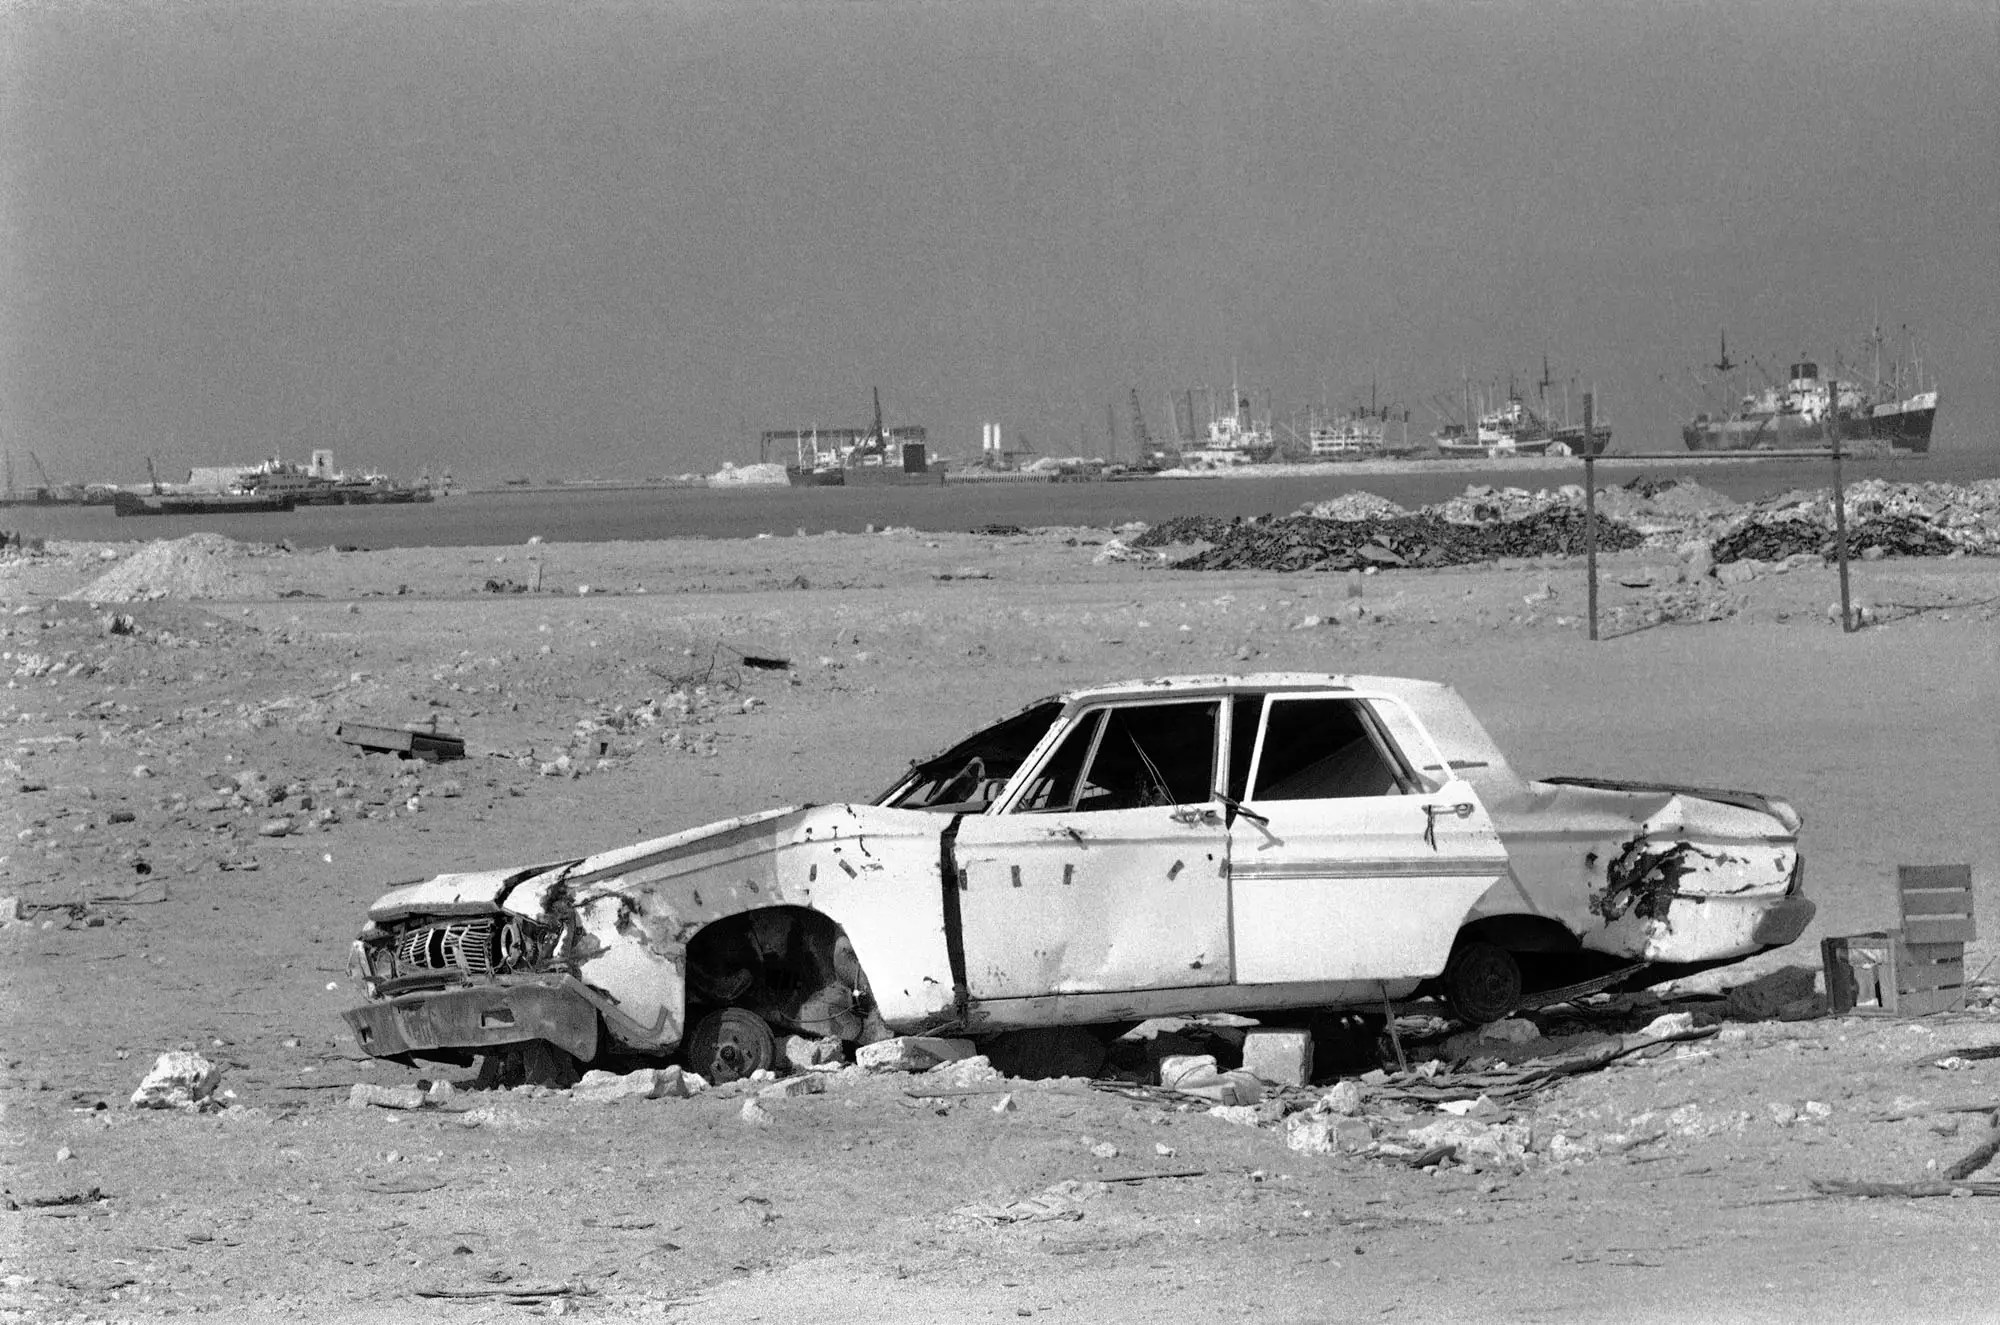 THEN: A discarded Plymouth Convertible American car is seen on the outskirts of the city in 1977, where it was dumped in the desert.